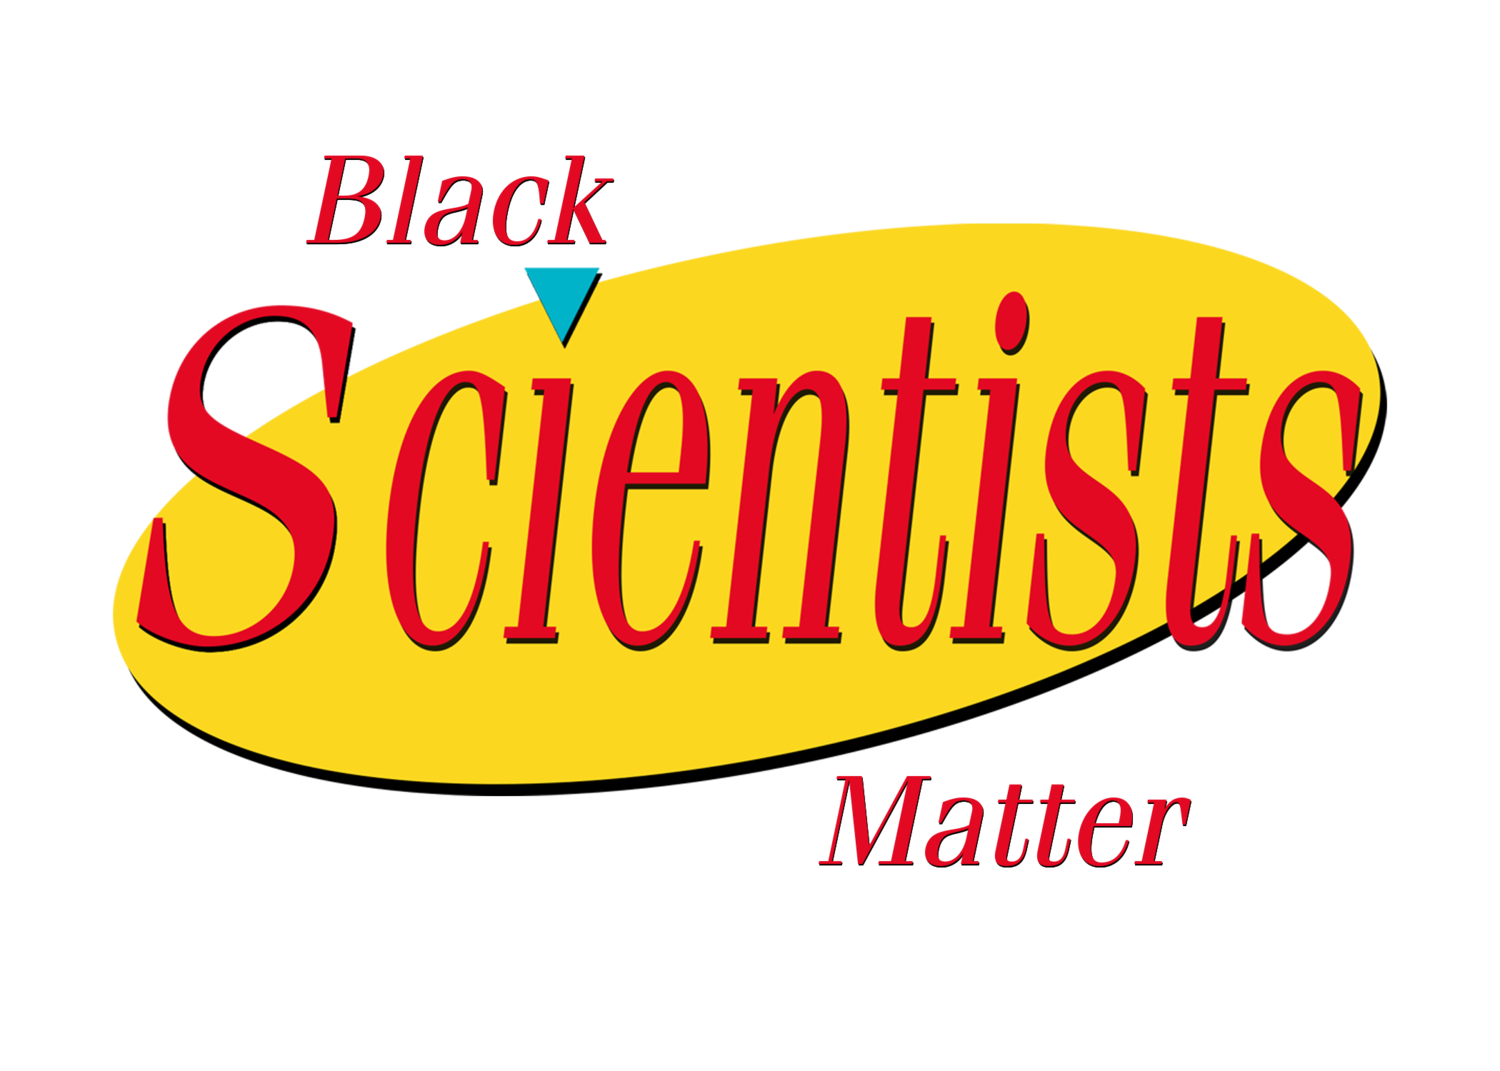 Black Scientists Matter